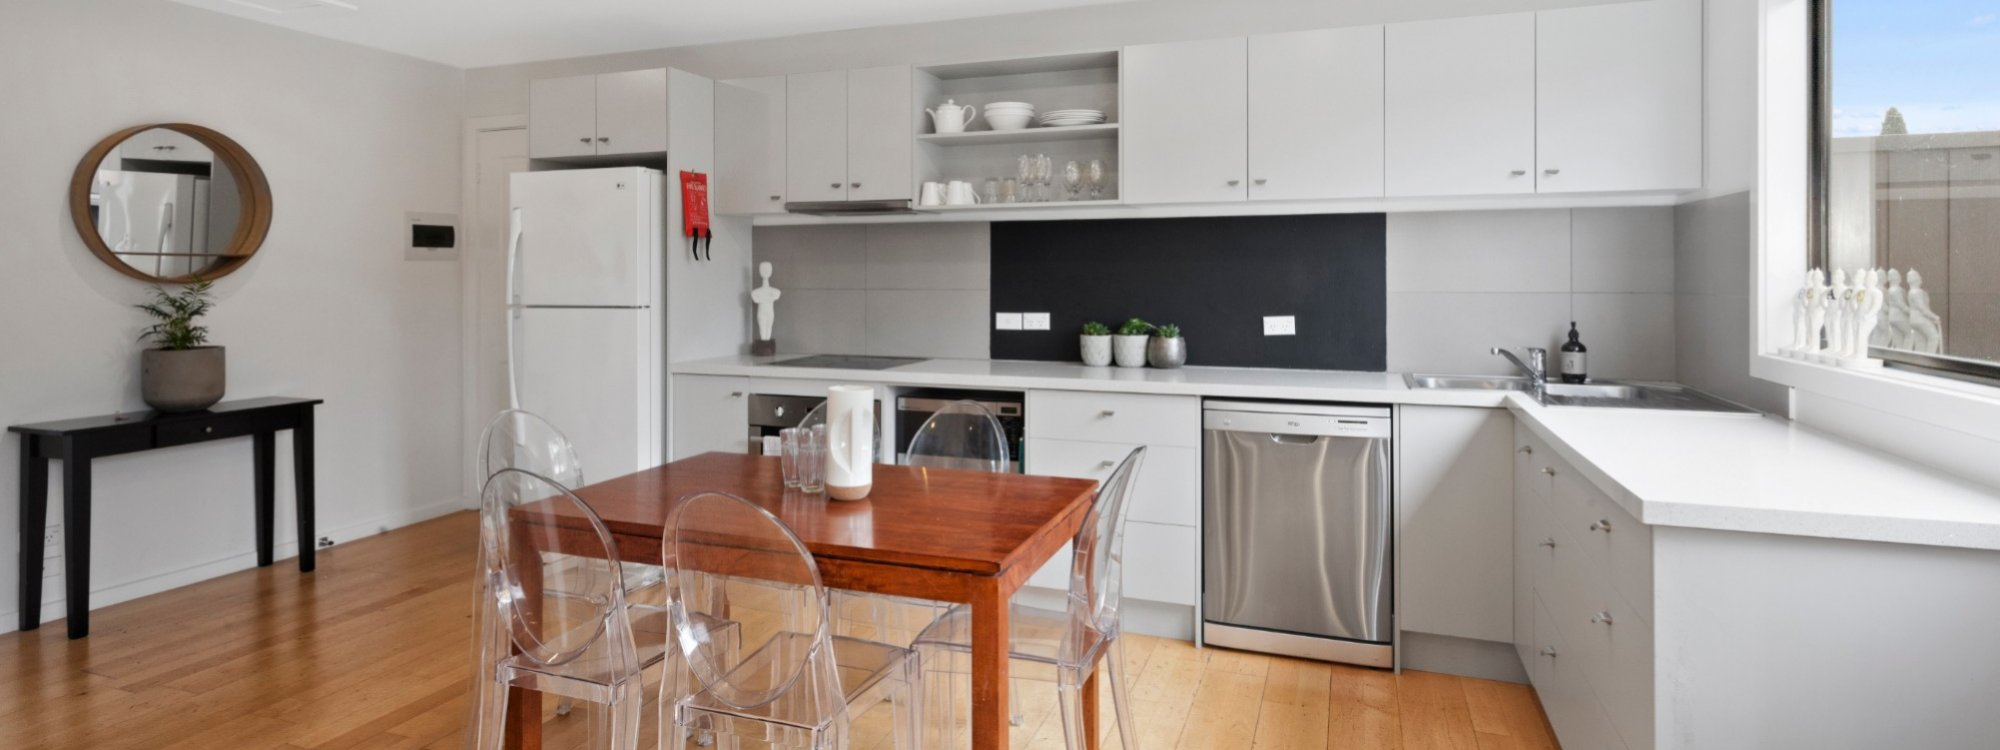 Manallack Apartments Whiteley - Melbourne - Kitchen Dining Area 1